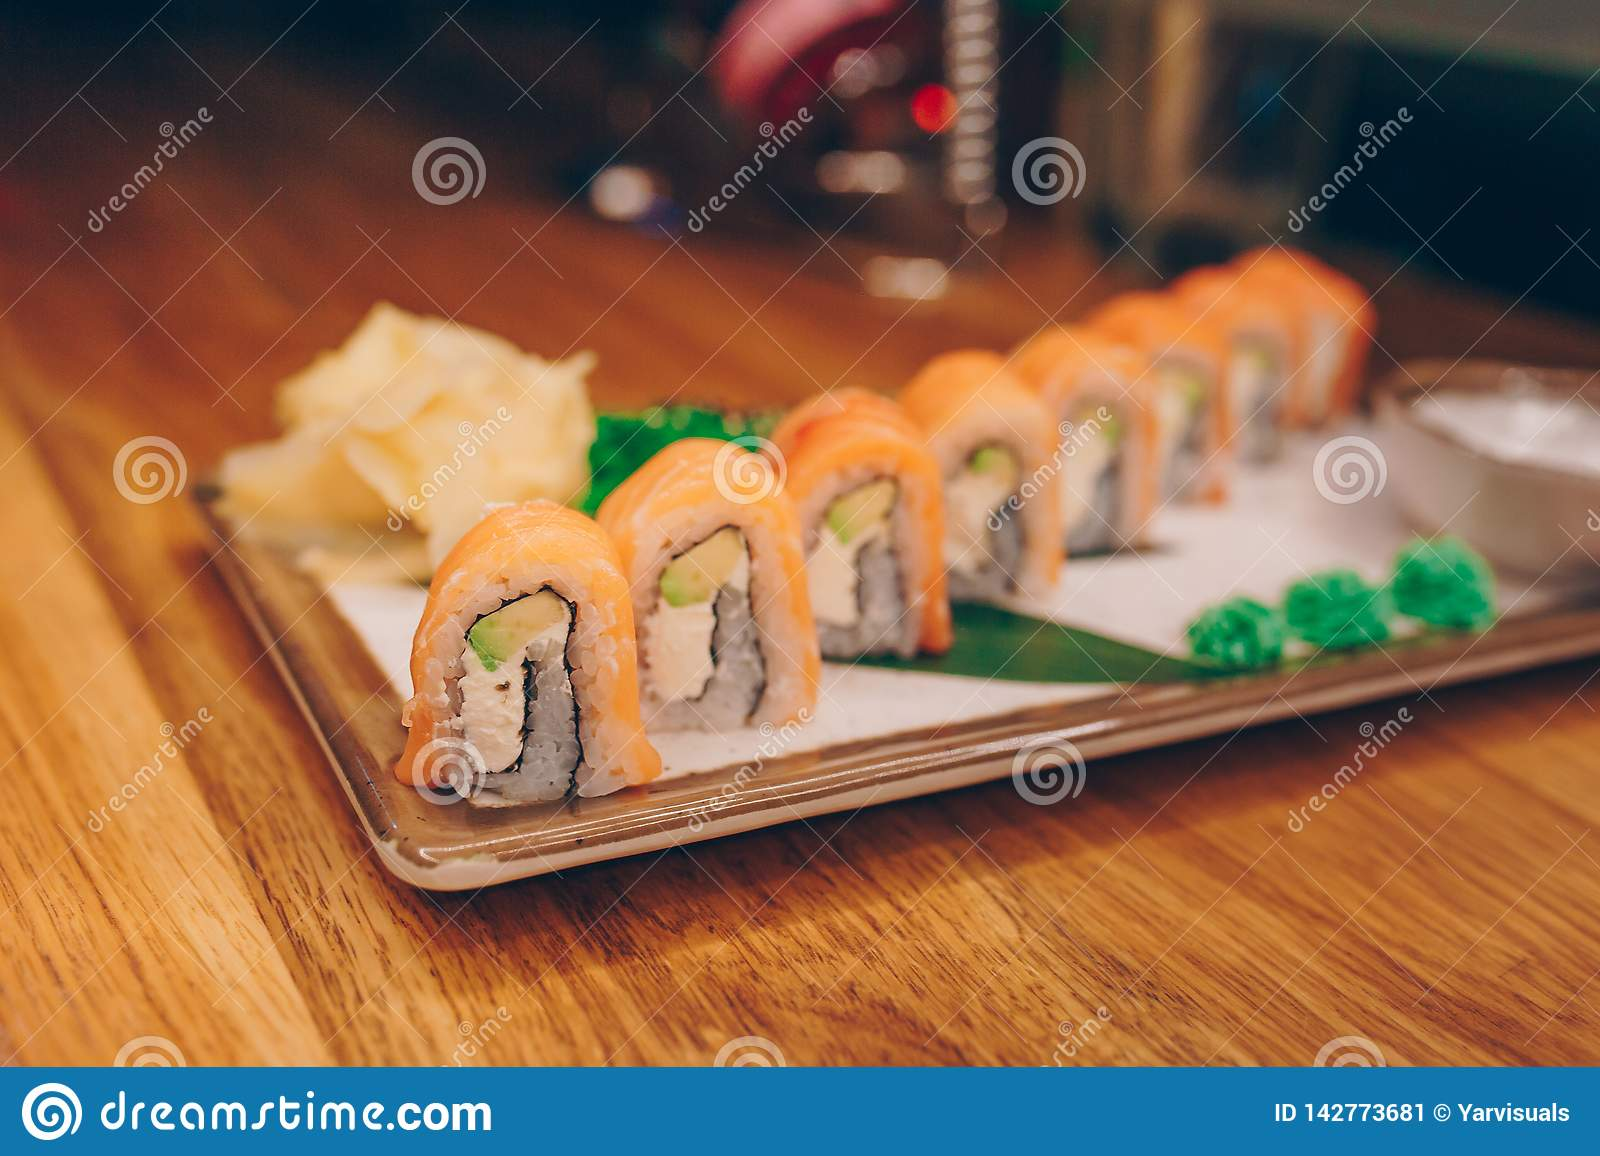 Plateau Cuisine Sushi Smoked Philly Plateau Buffet In Night Dining Resturant Flat